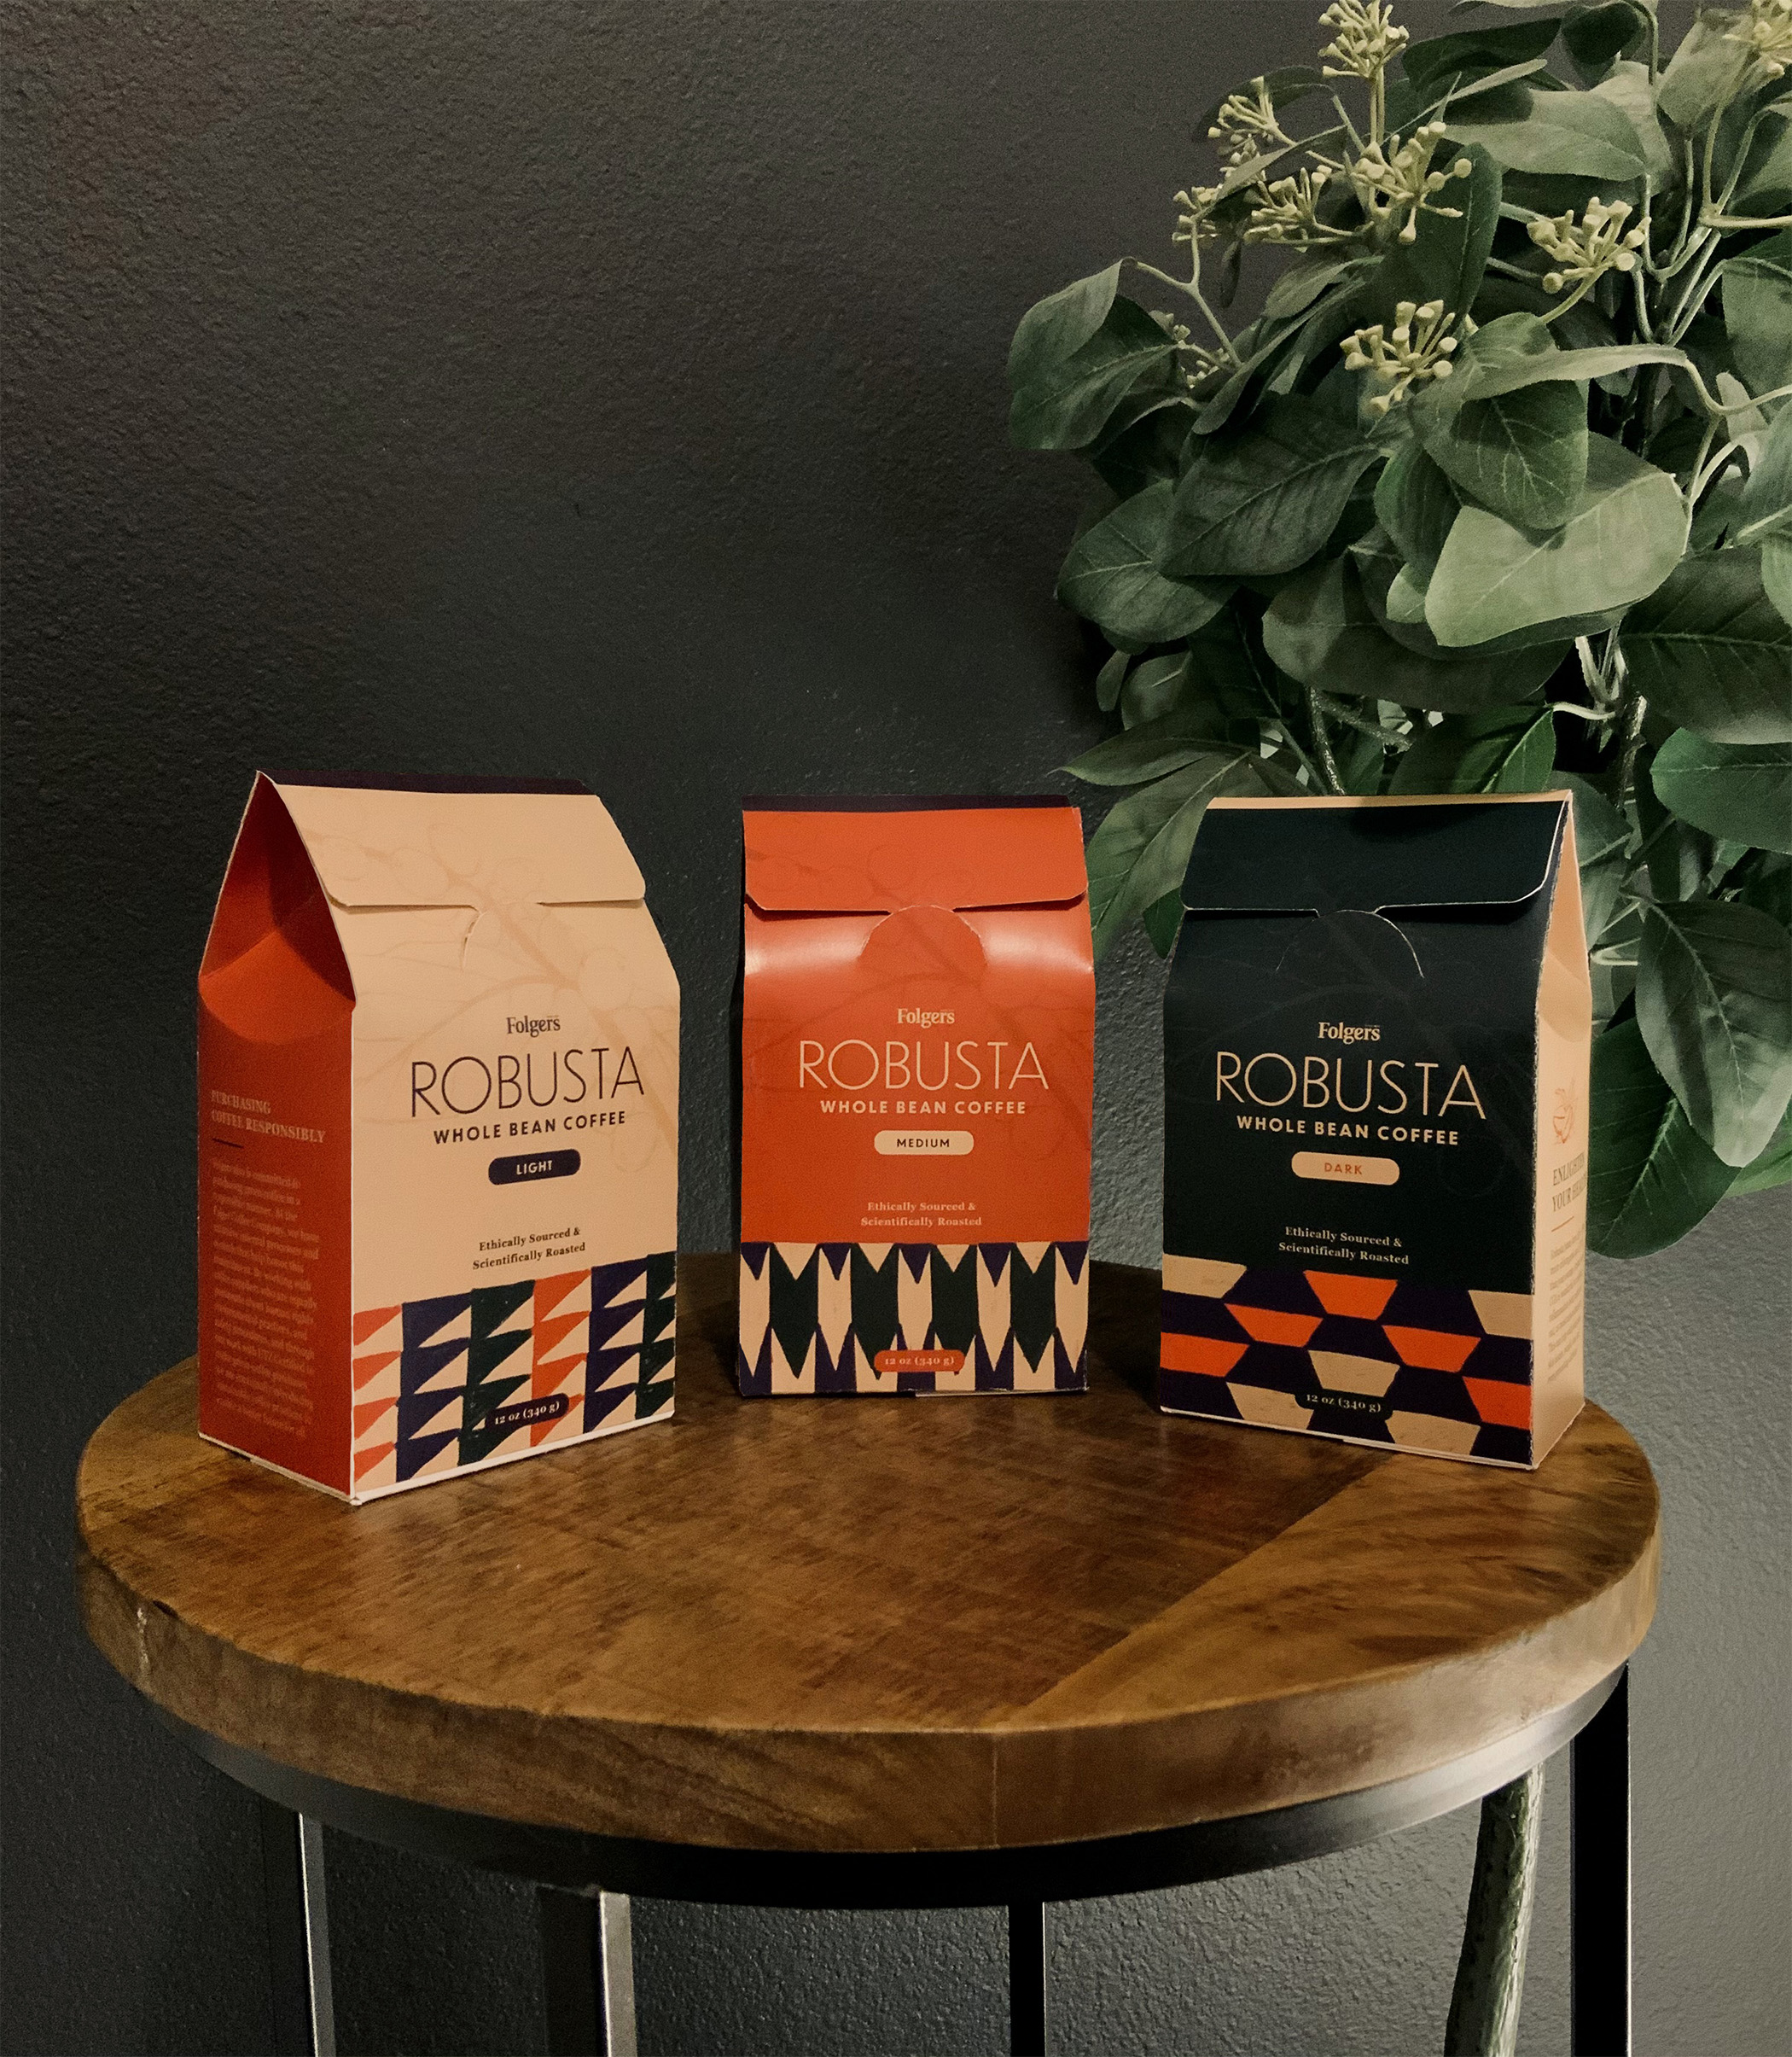 package design Folgers coffee. Colors of design are red, black and light peach